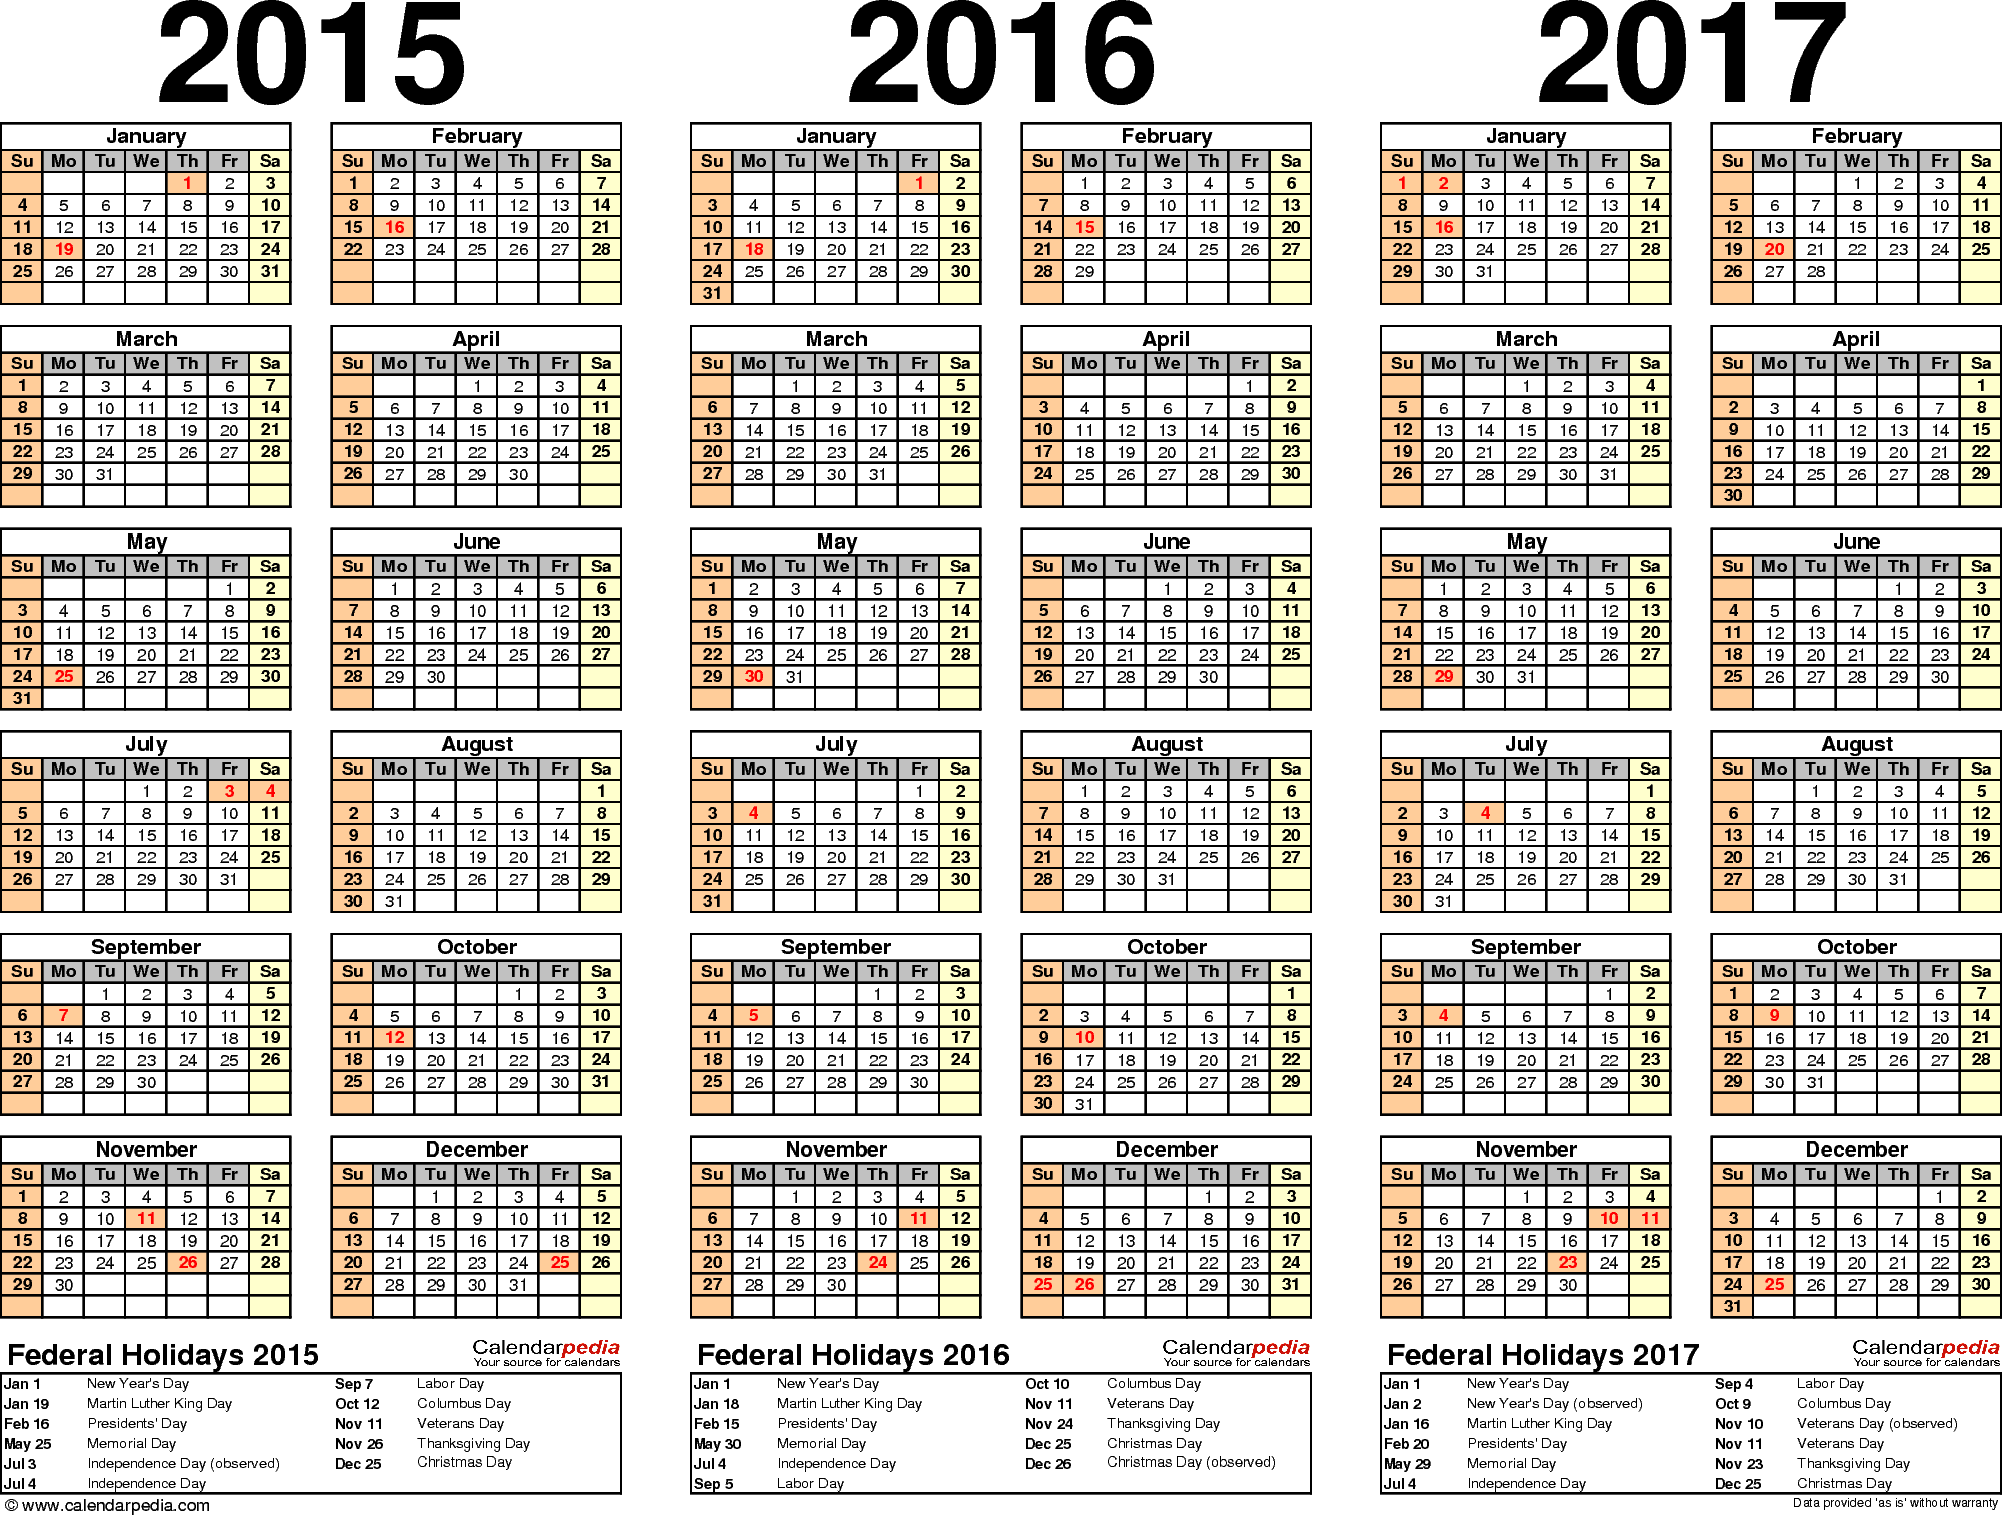 Template 2: Microsoft Word template for three year calendar 2015-2017 (landscape orientation, 1 page)